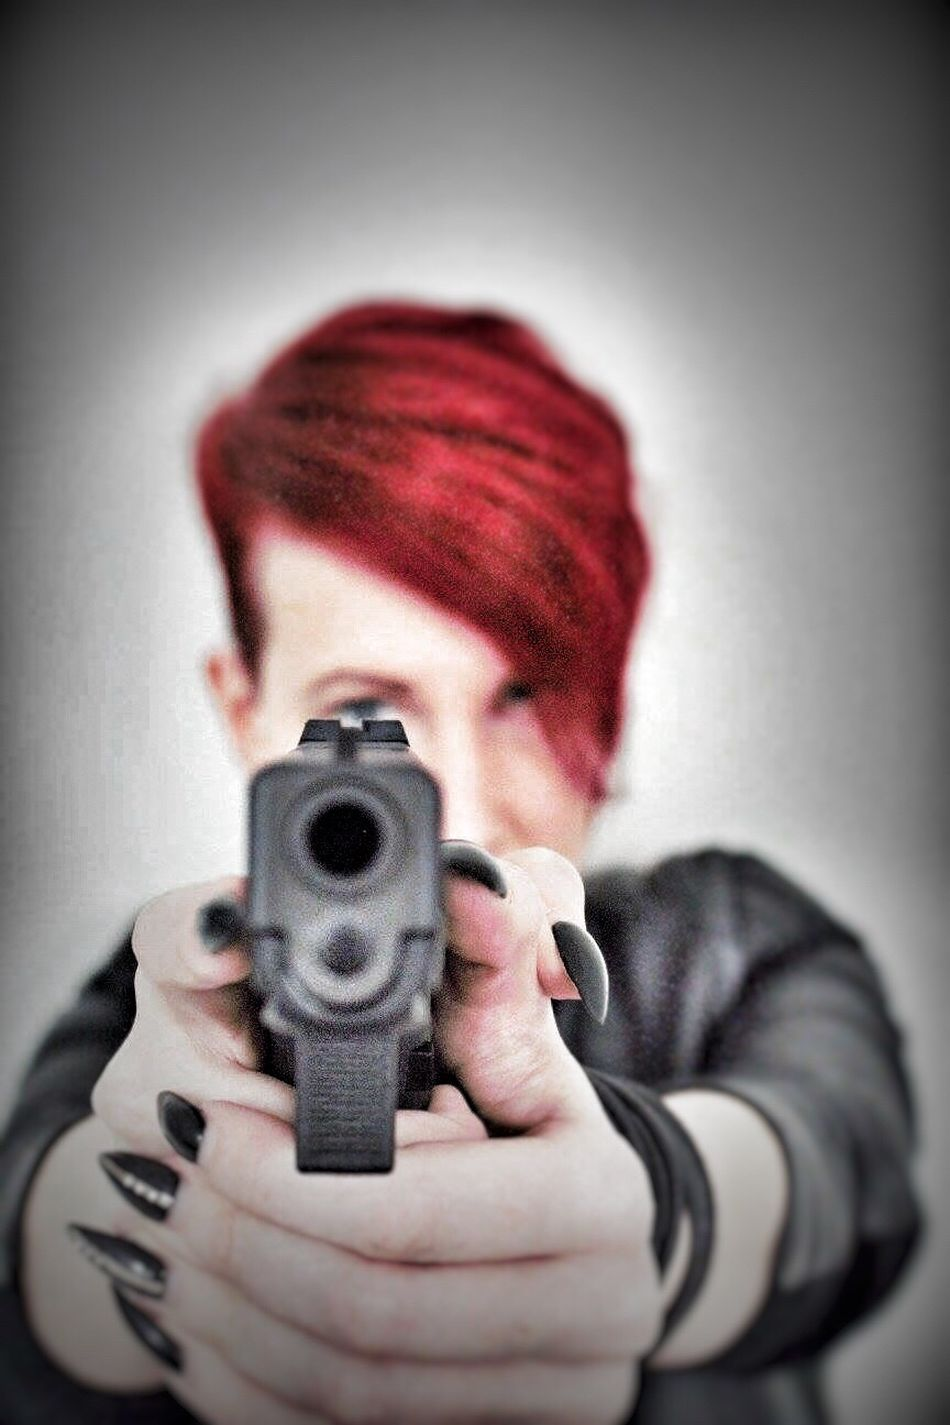 "One more picture from the agent 47 ""femme fatale"" series. No panic it is just art not more. Gun GLOCK Weapon Target Shooting Target Modeling Model Posing Tadaa Community Posing For The Camera Inspired By Movies Woman Female Model Femme Fatale Female Canonphotography Guns Dangerous Experiment"